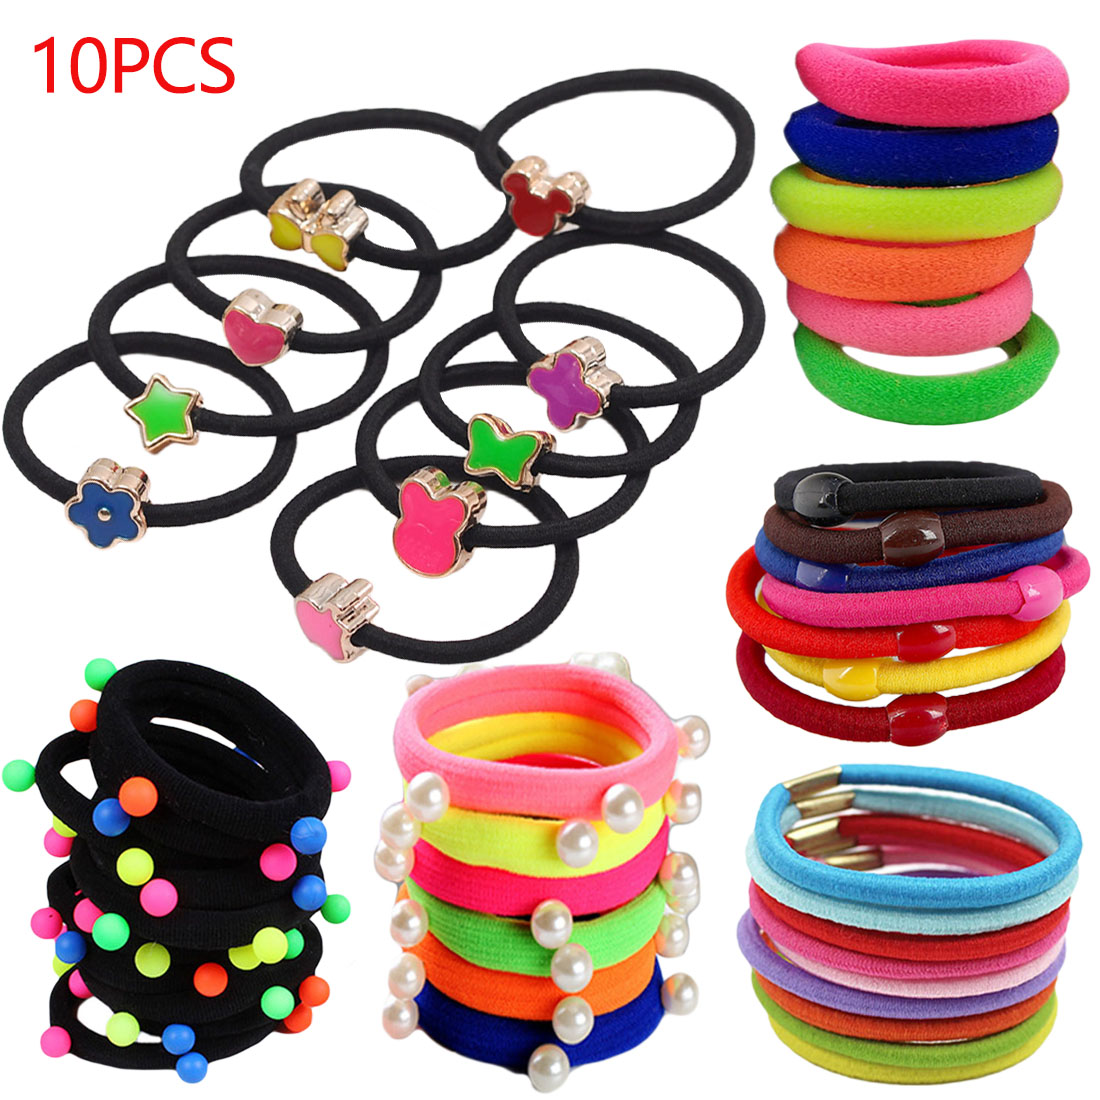 Colorful 10pcs/lot Headbands Elastic Seamless Scrunchie Gum   Headwear   Ponytail Holder Ropes Hair Accessories Women Hair Ornaments